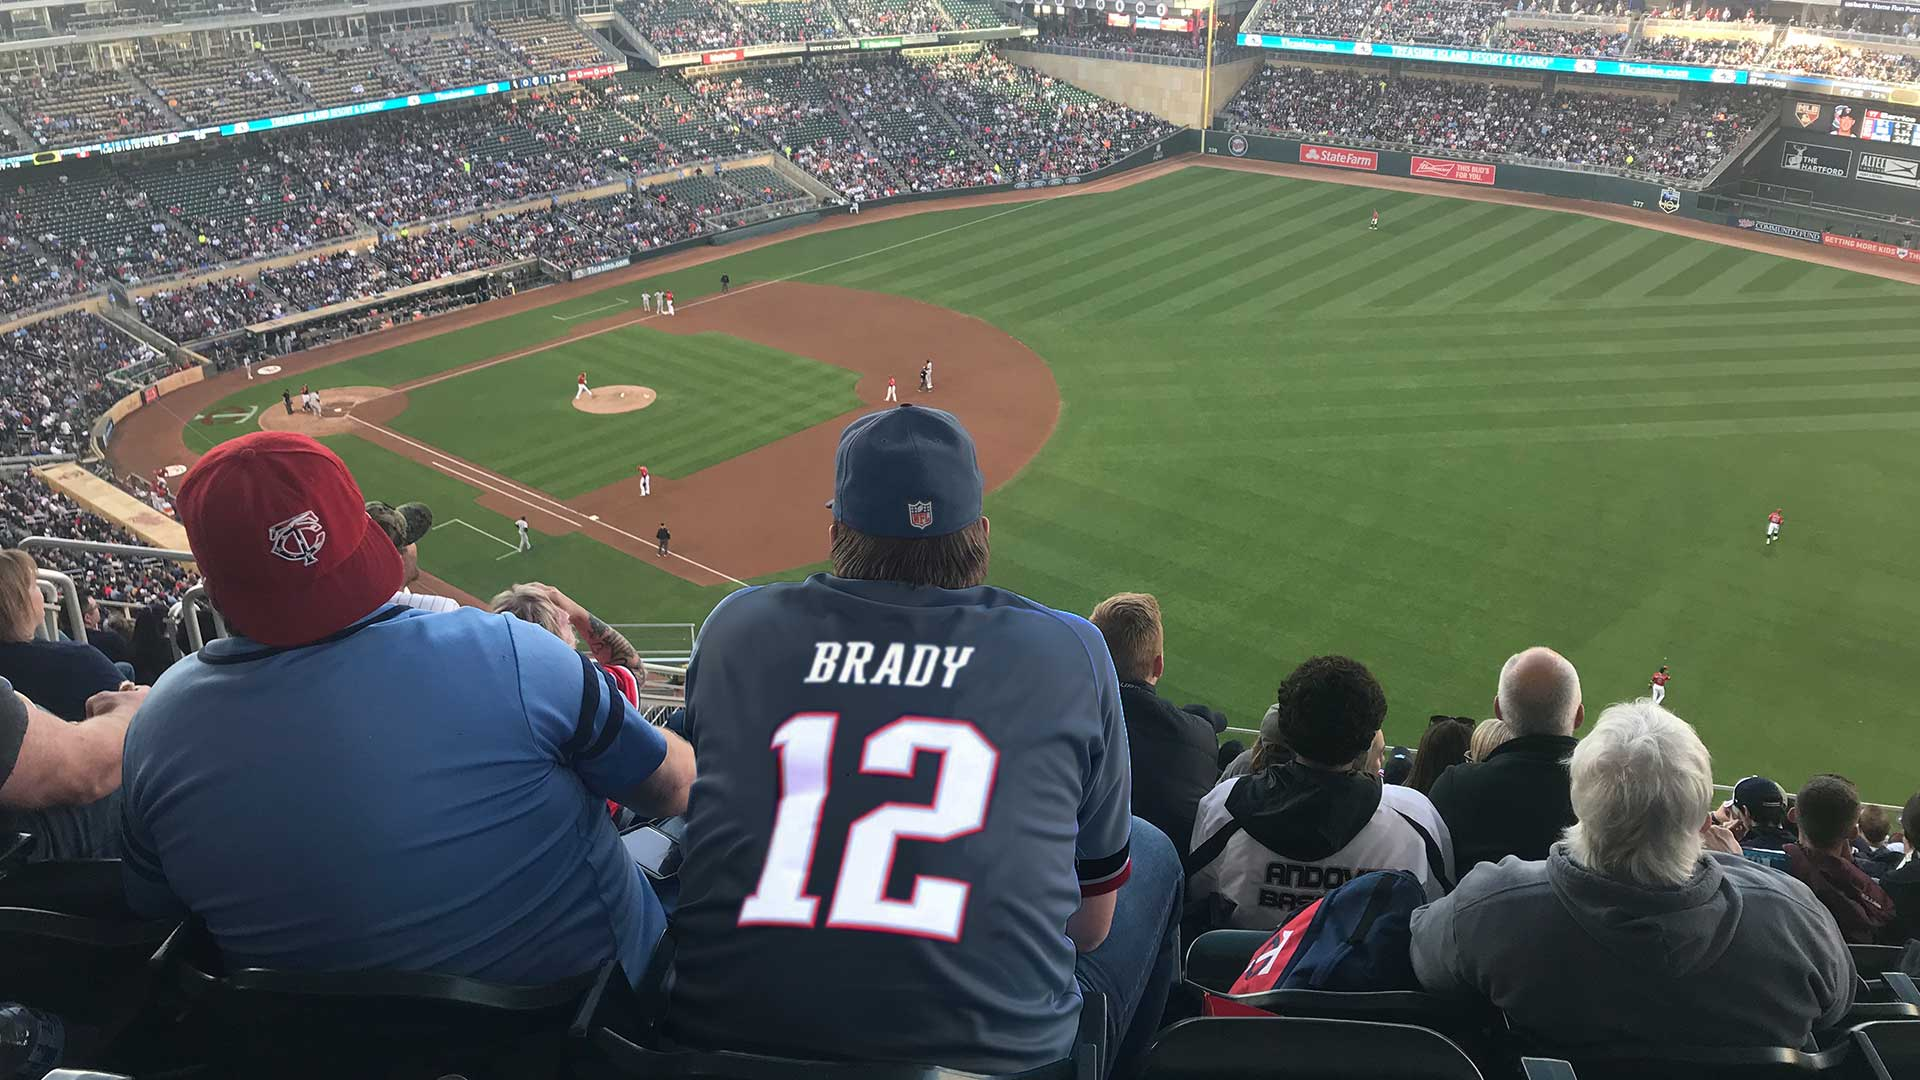 Fan-Wearing-Tom-Brady-Jersey-at-Twins-Game-For-Some-Reason.jpg